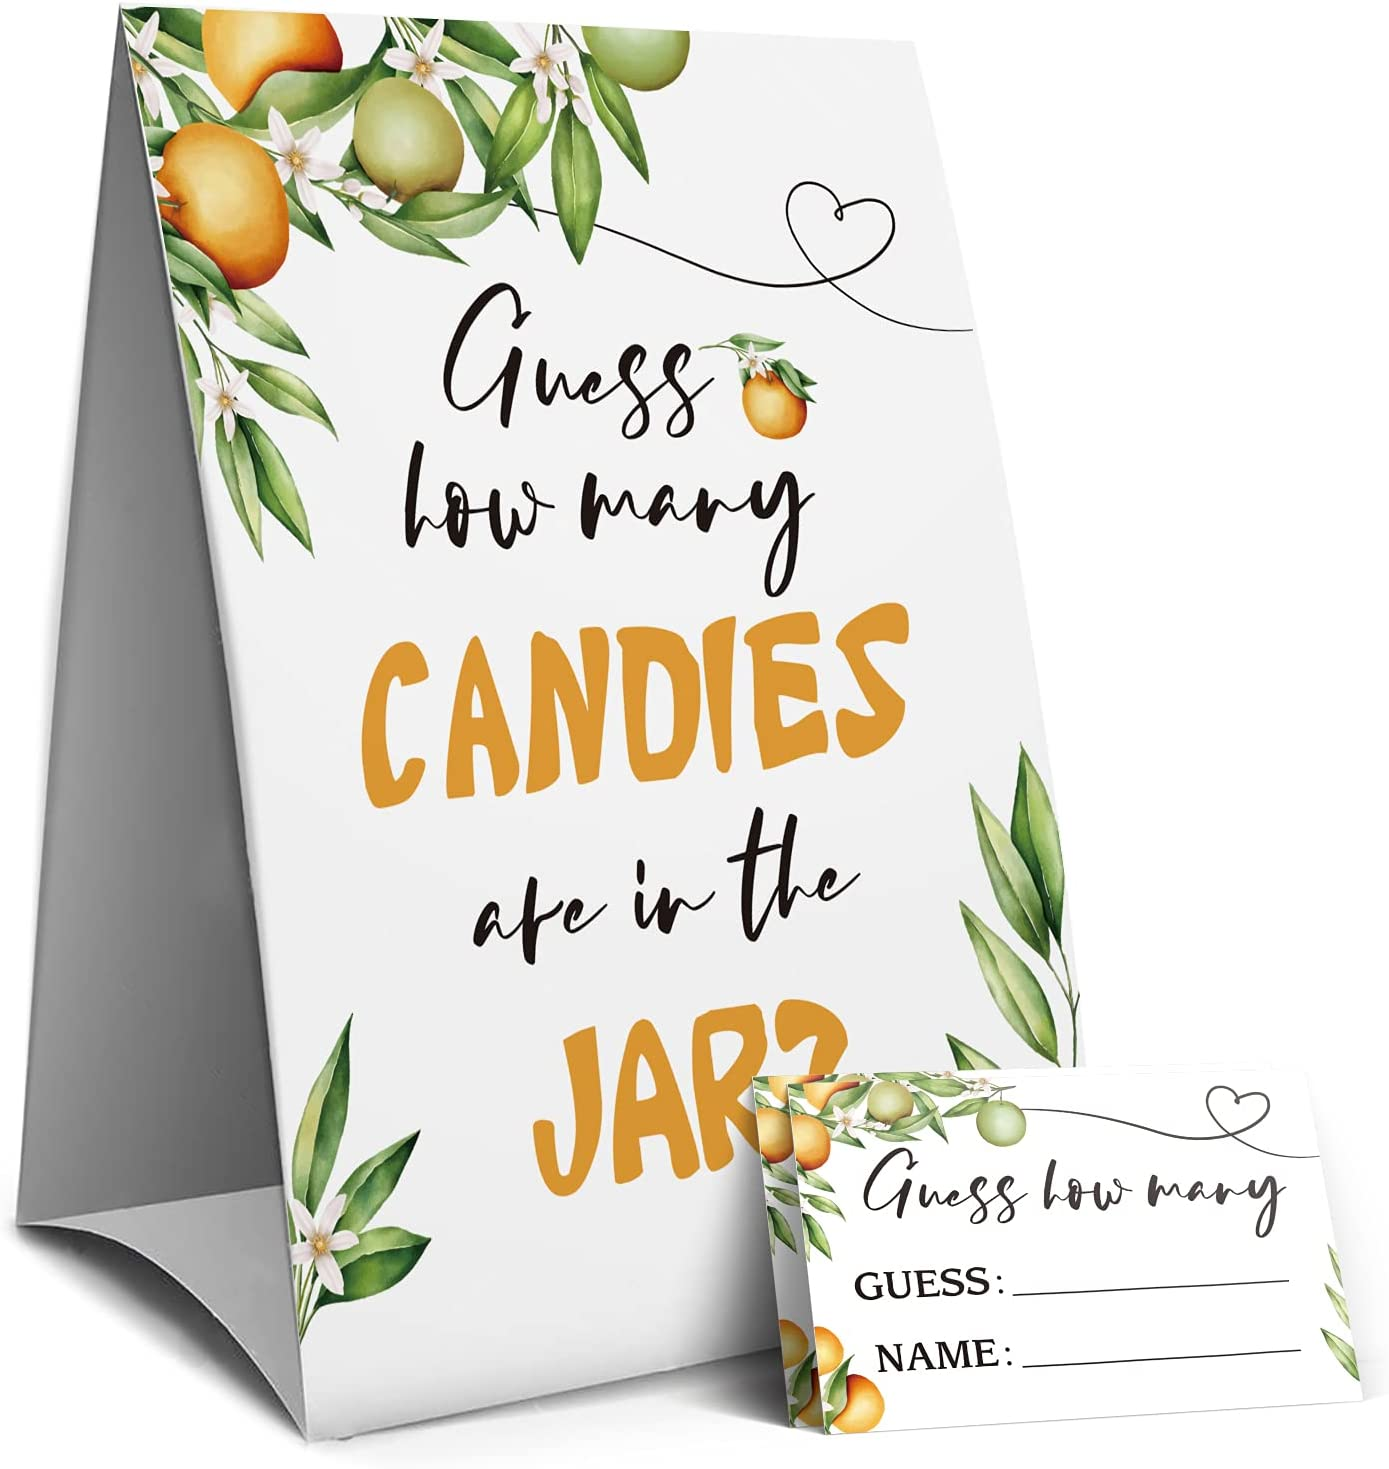 Orange Guess How Many Candies Are In The Jar, Christmas Party Game Sign,Baby Shower Game Sign, Bridal Shower Game Sign, Birthday Party Games Sign,Halloween Candies Guessing Game -1 Sign and 50 Guessing Cards(4A)